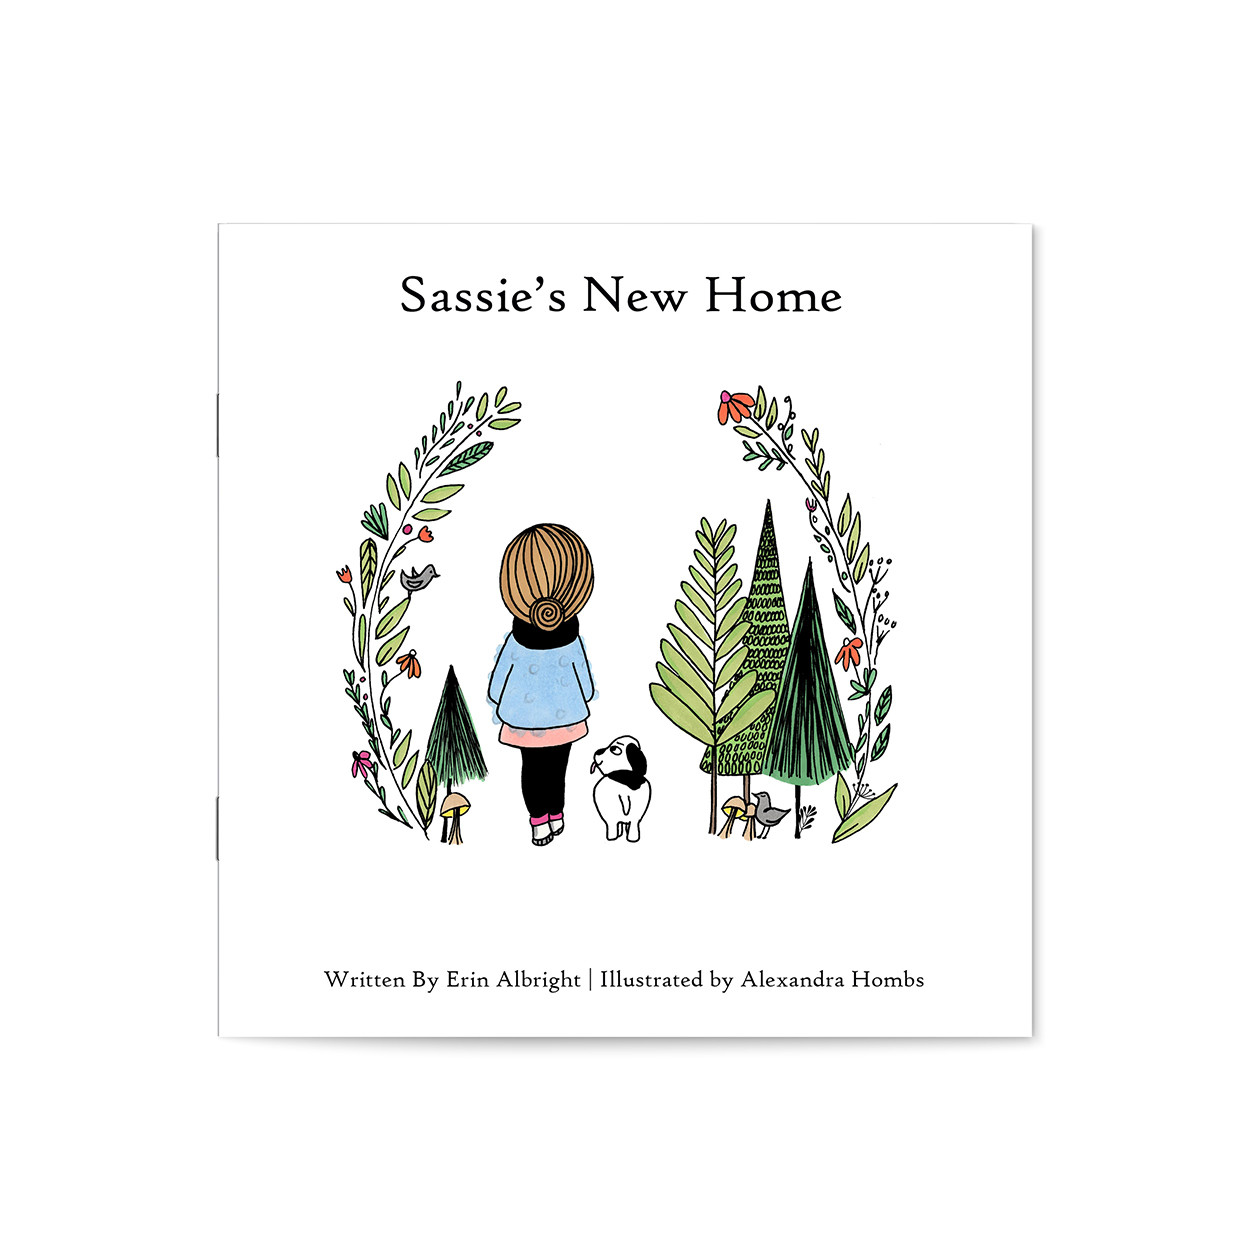 Sassie's New Home (Paperback Book)